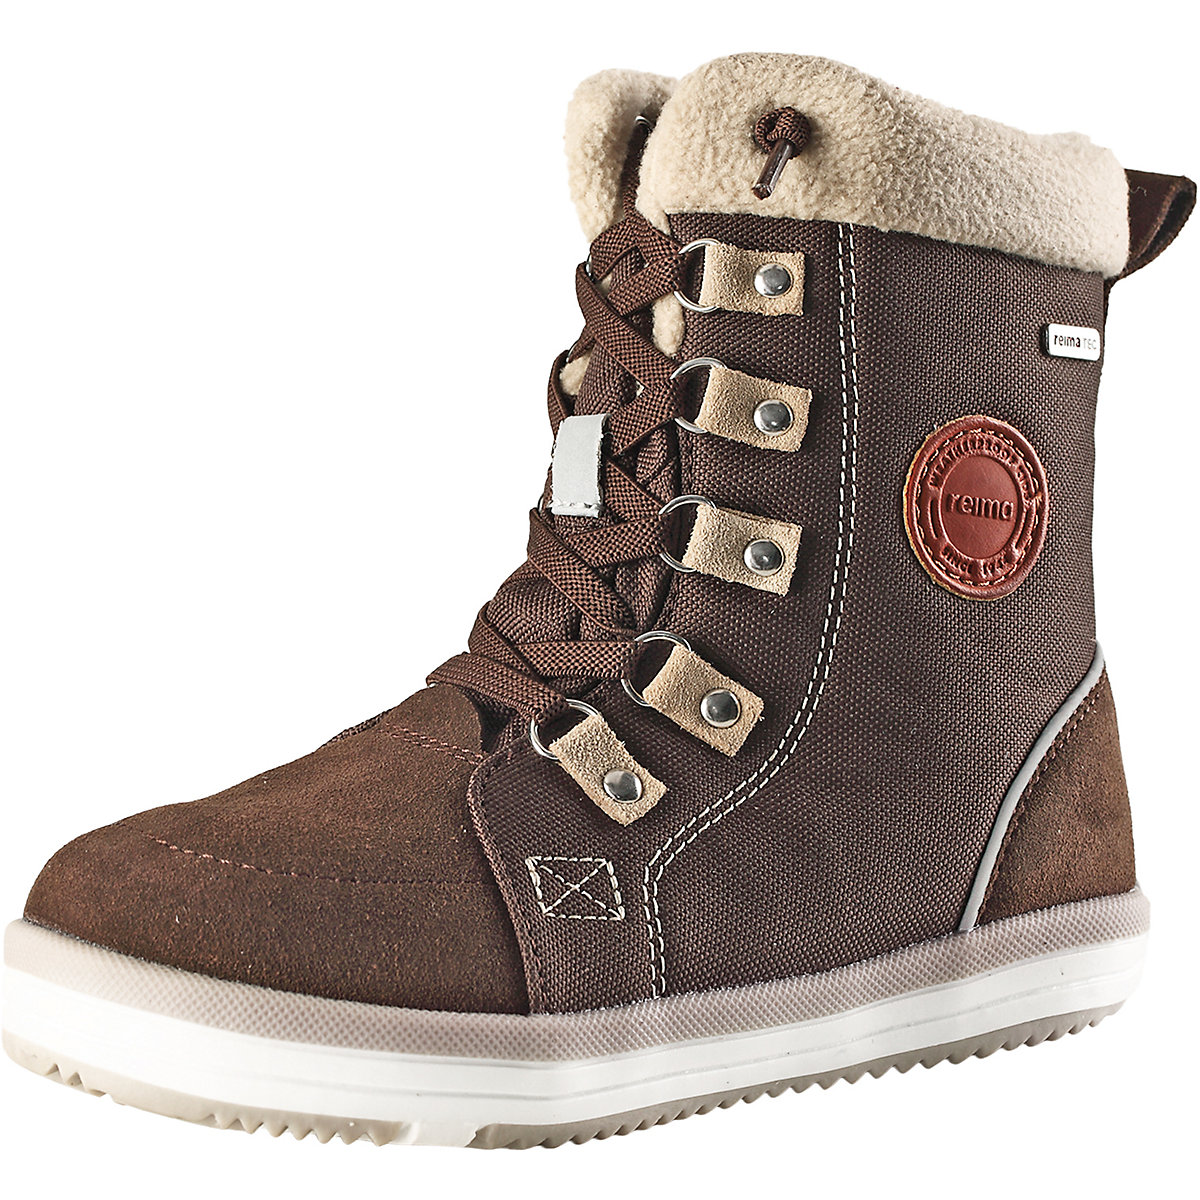 REIMA Boots 8624998 for boys winter boy baby shoes women shoes high heel for winter boots pointed toe ankle boots for women martin boots fashion zip gladiator women boots